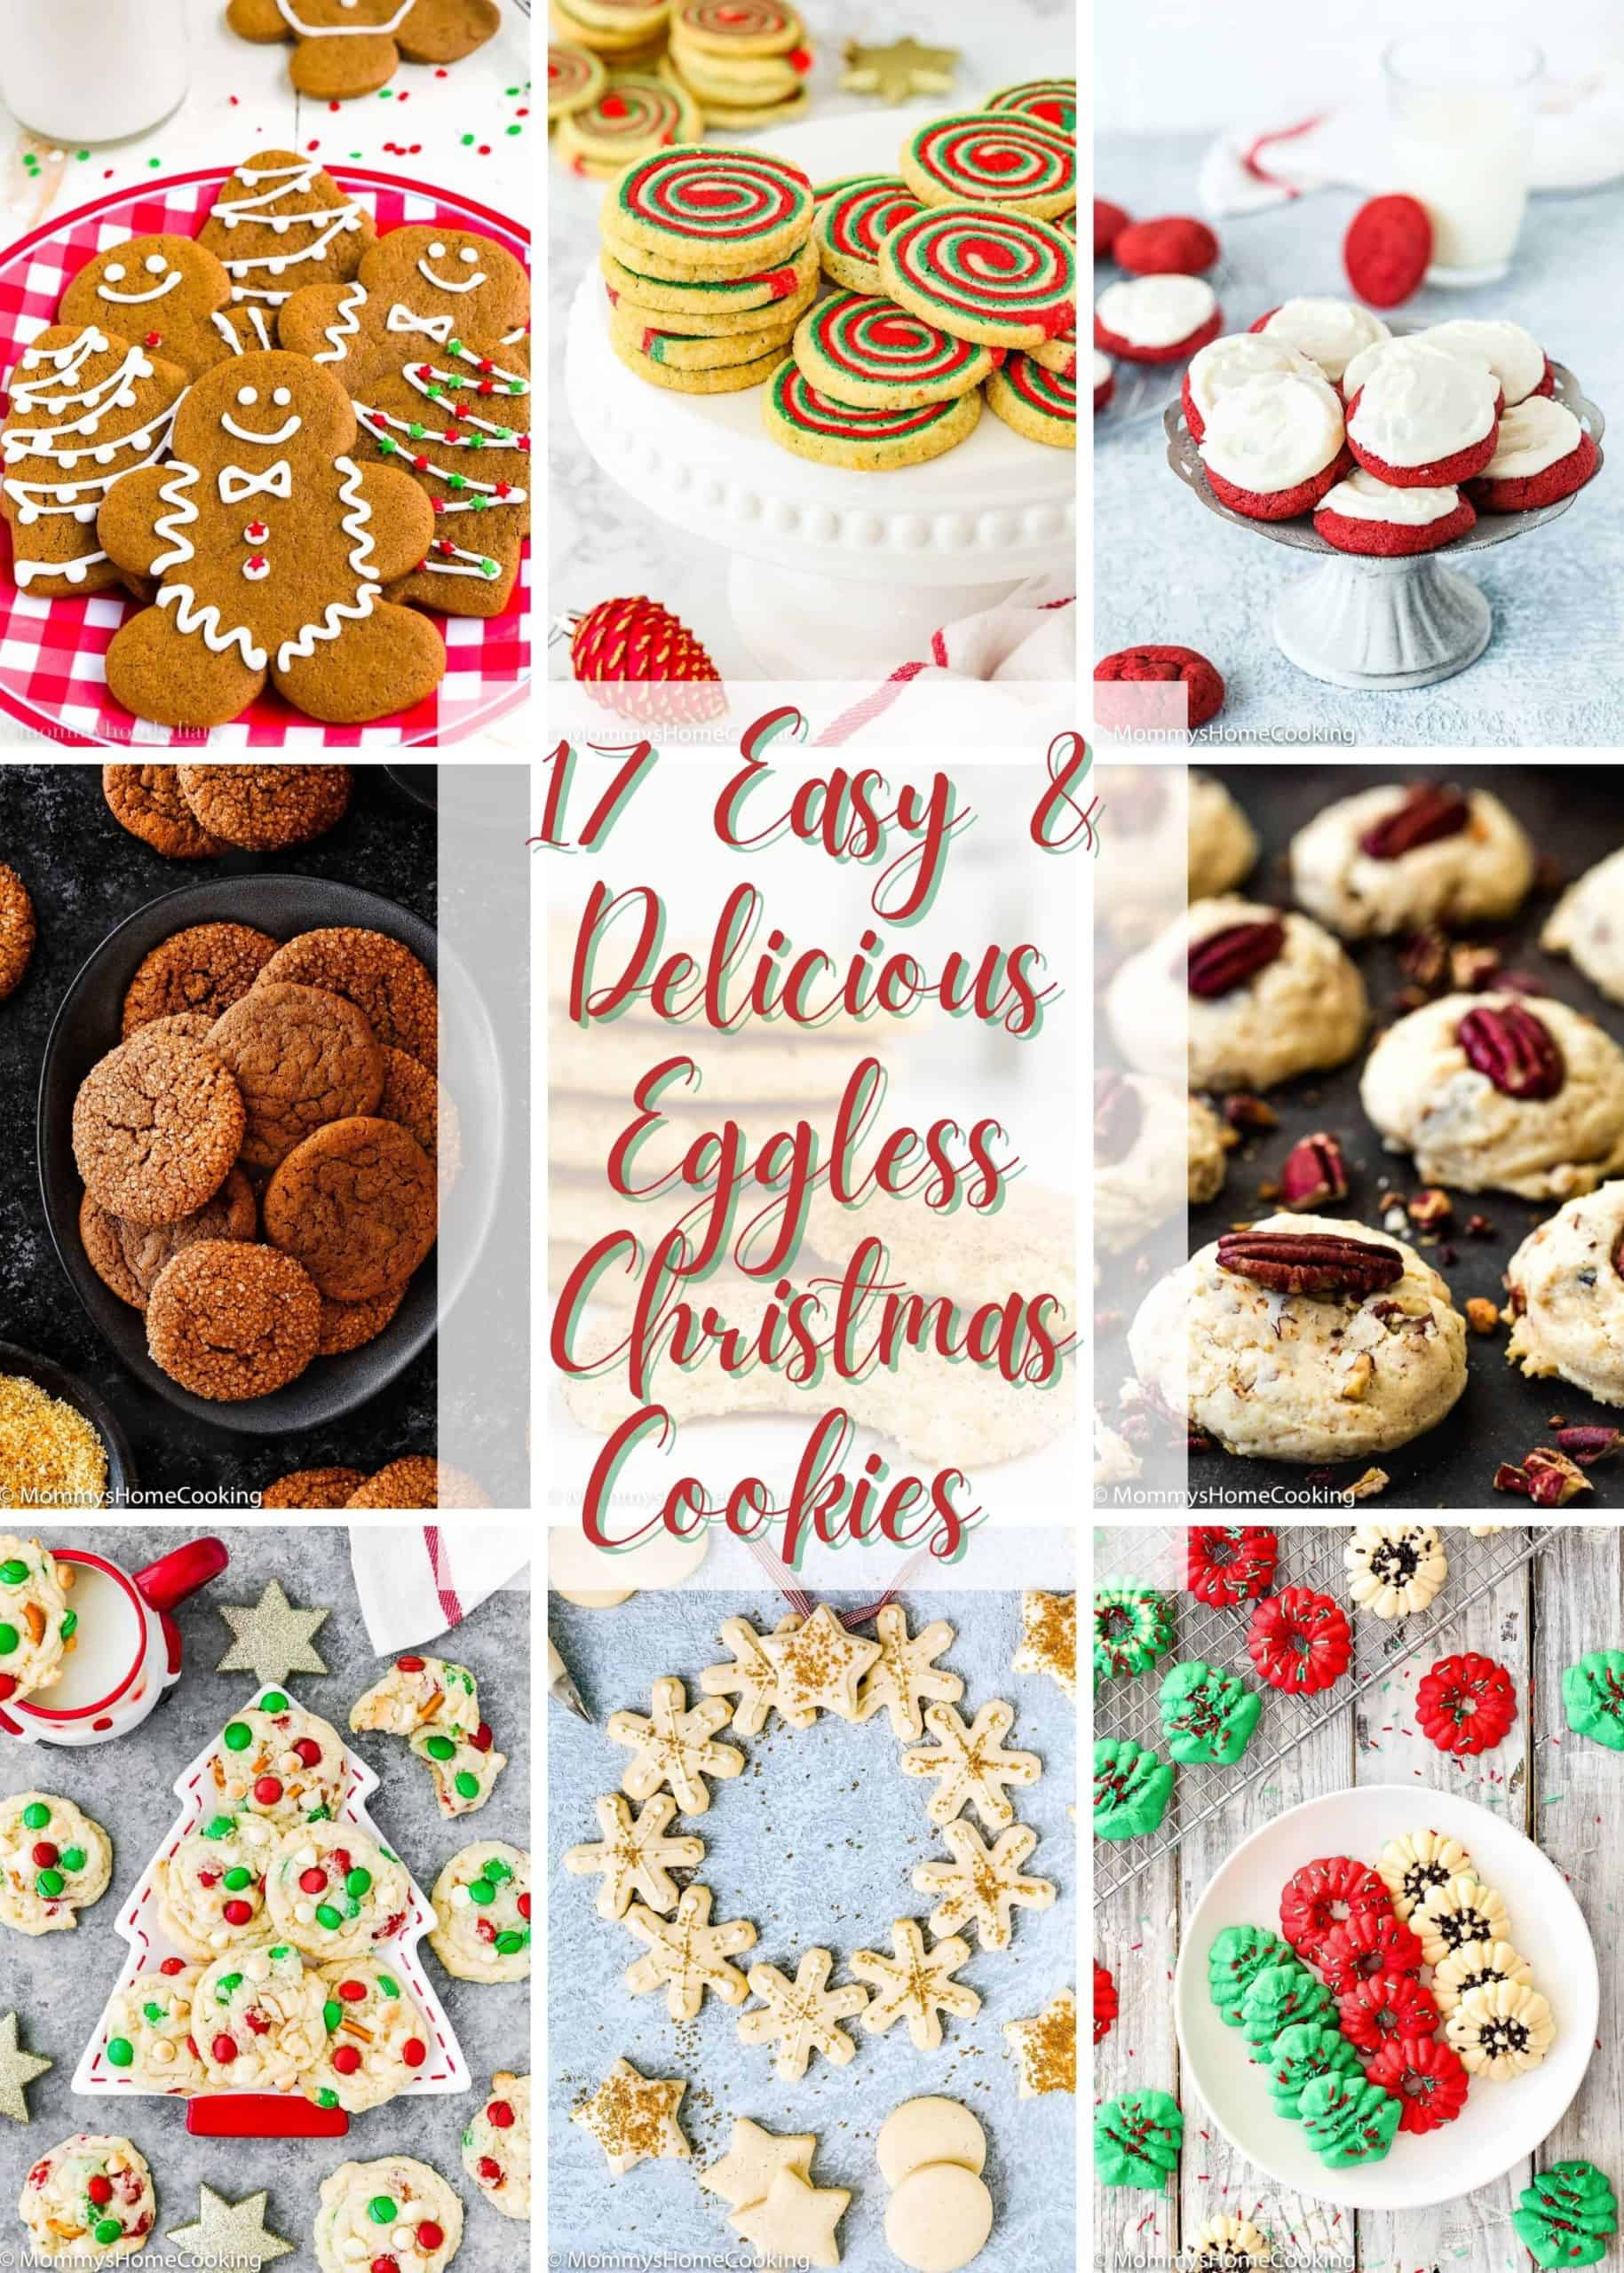 17 easy and delicious eggless Christmas cookies